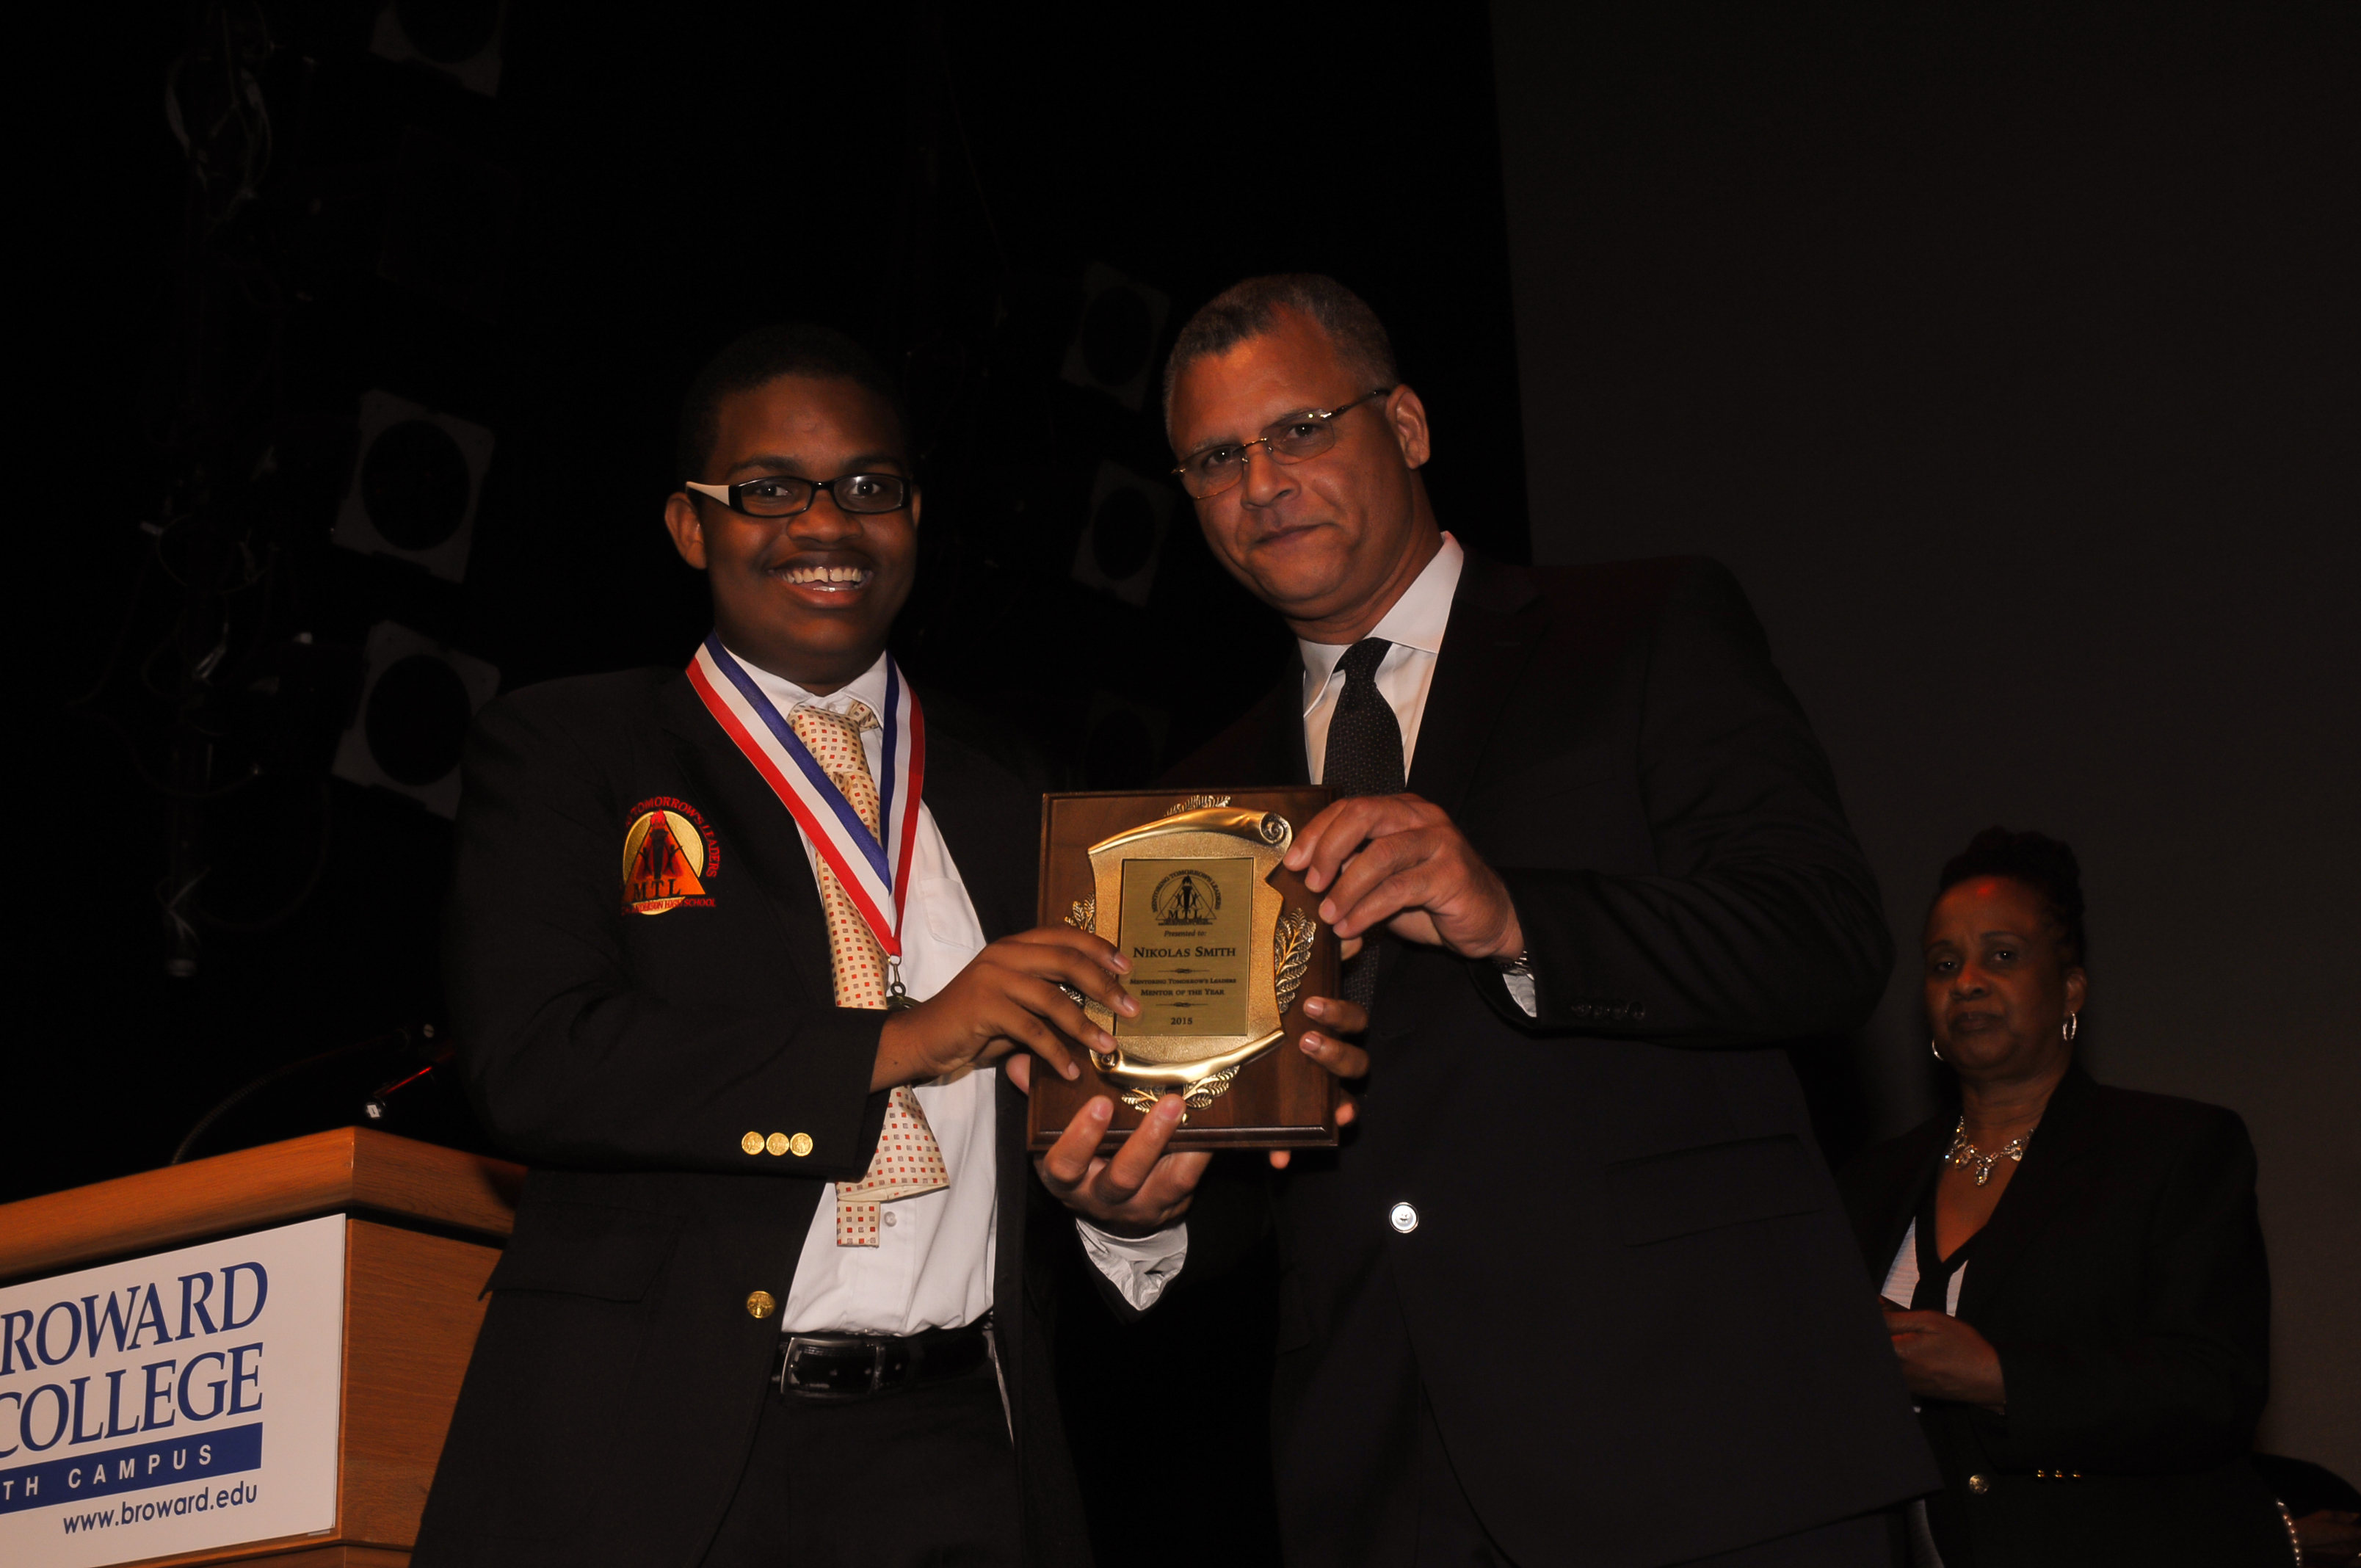 Mentoring Tomorrow Leaders Scholarships Award Banquet | Nicks Photo ...